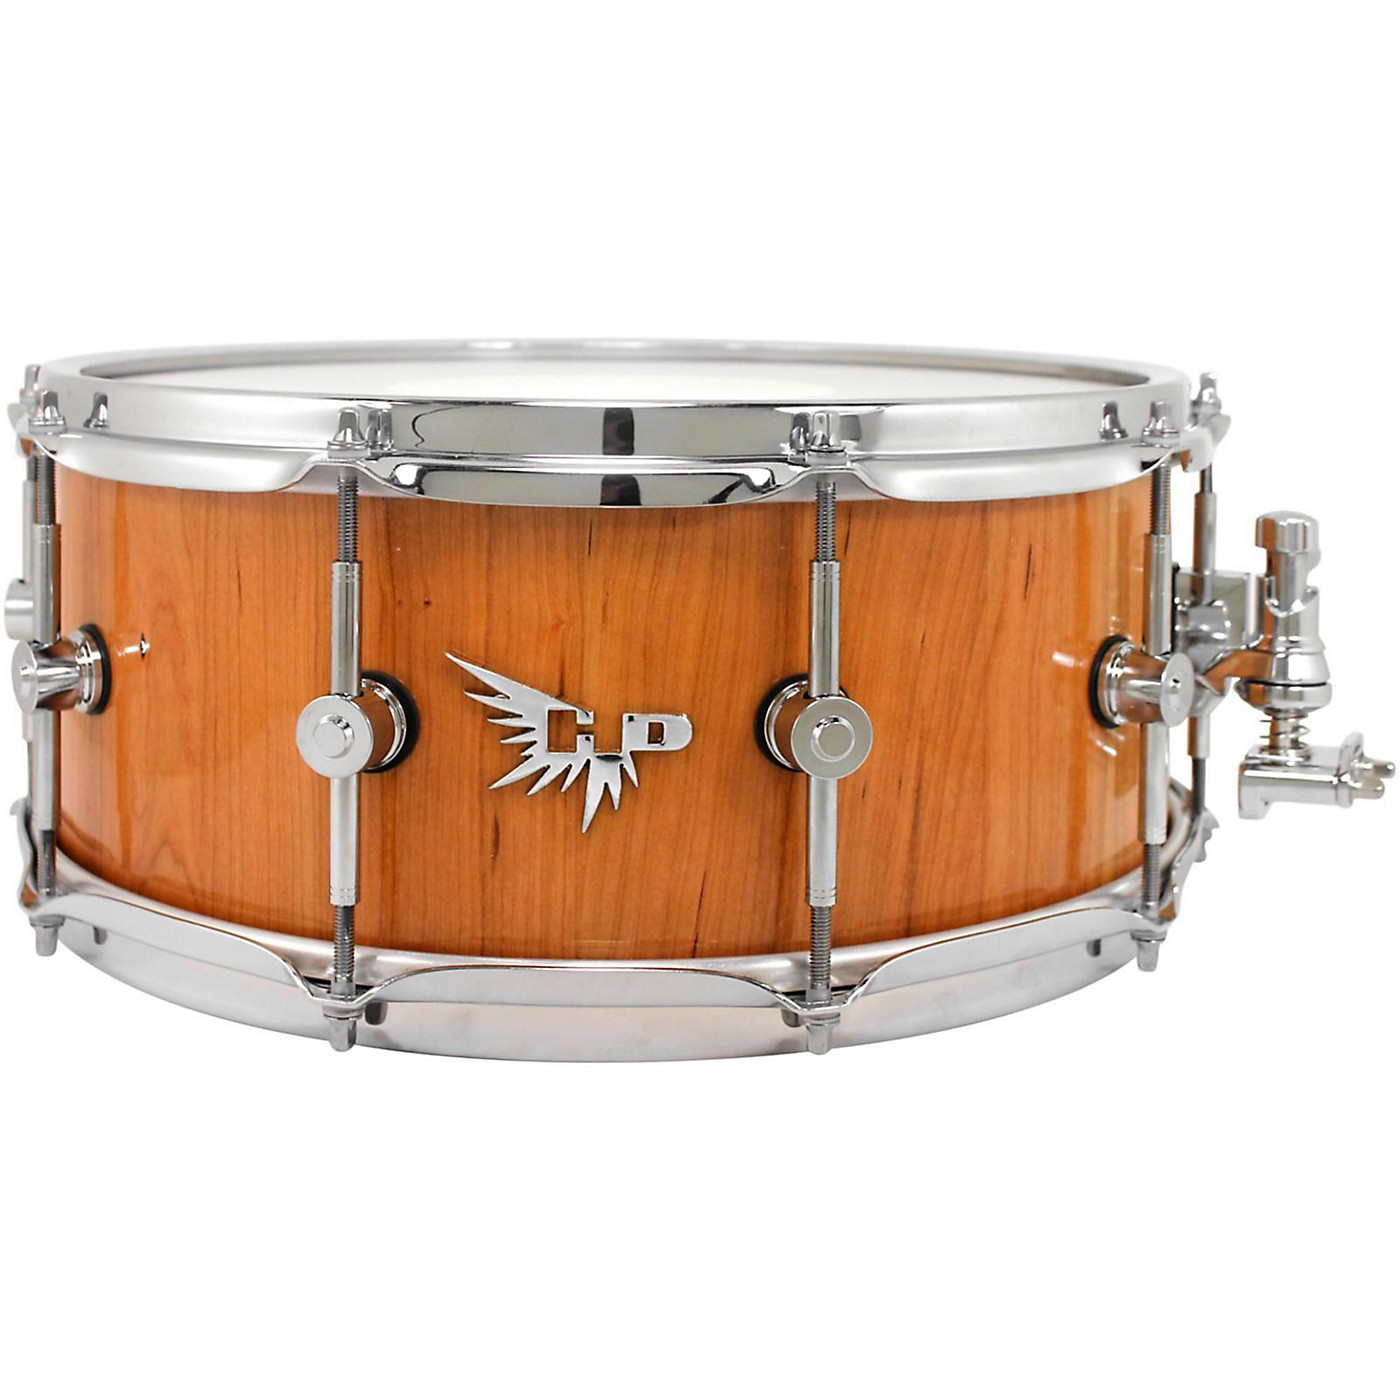 Hendrix Drums Archetype Series American Black Cherry Stave Snare Drum thumbnail